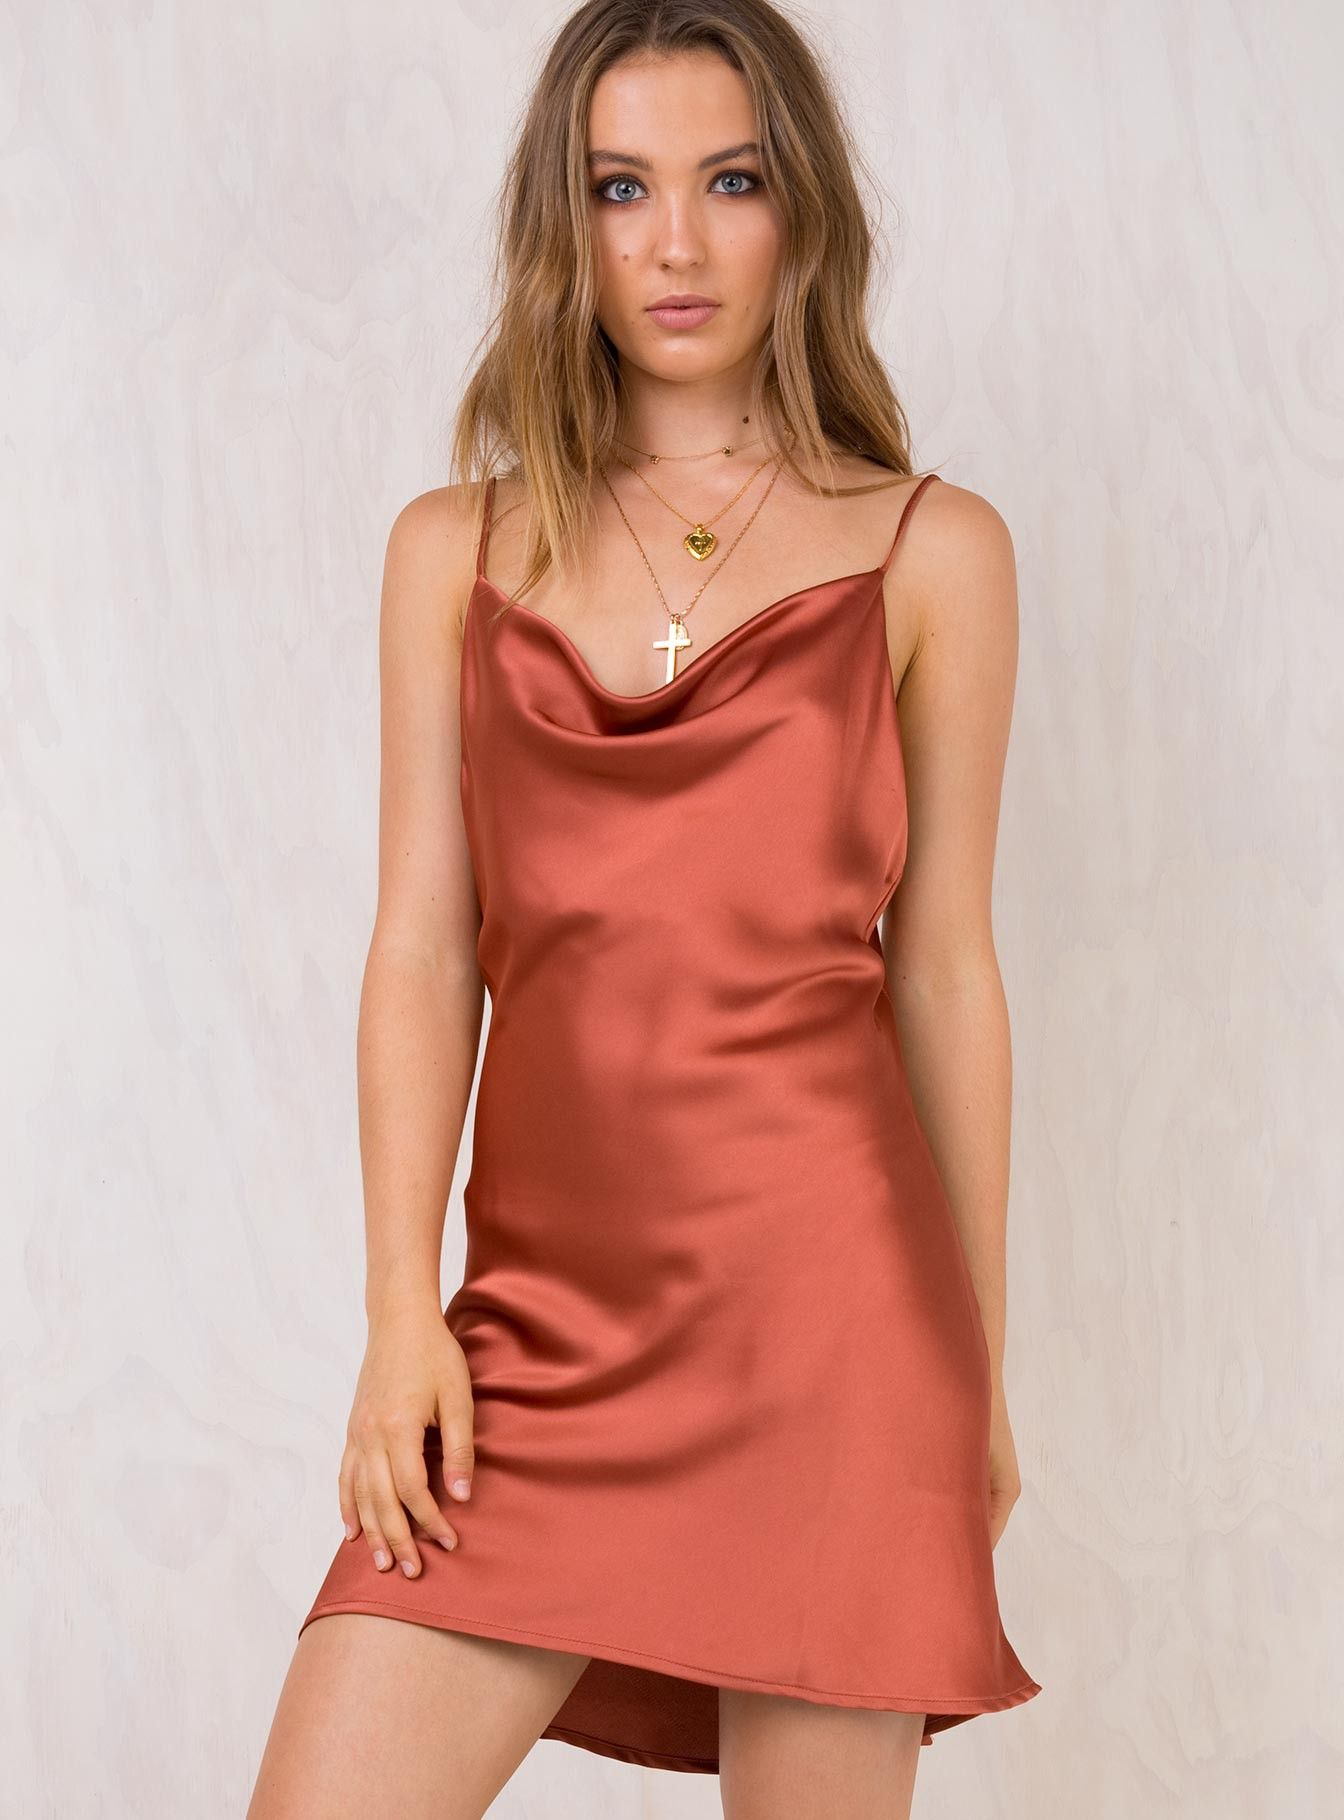 96cfa4b43f6 Betta+Vanore+Mini+Dress+Rust+-+ Silky+mini+dress Cowl+neckline Low+cut+back  Adjustable+straps Smooth+silky+material Lined+bust 100%+Polyester ...